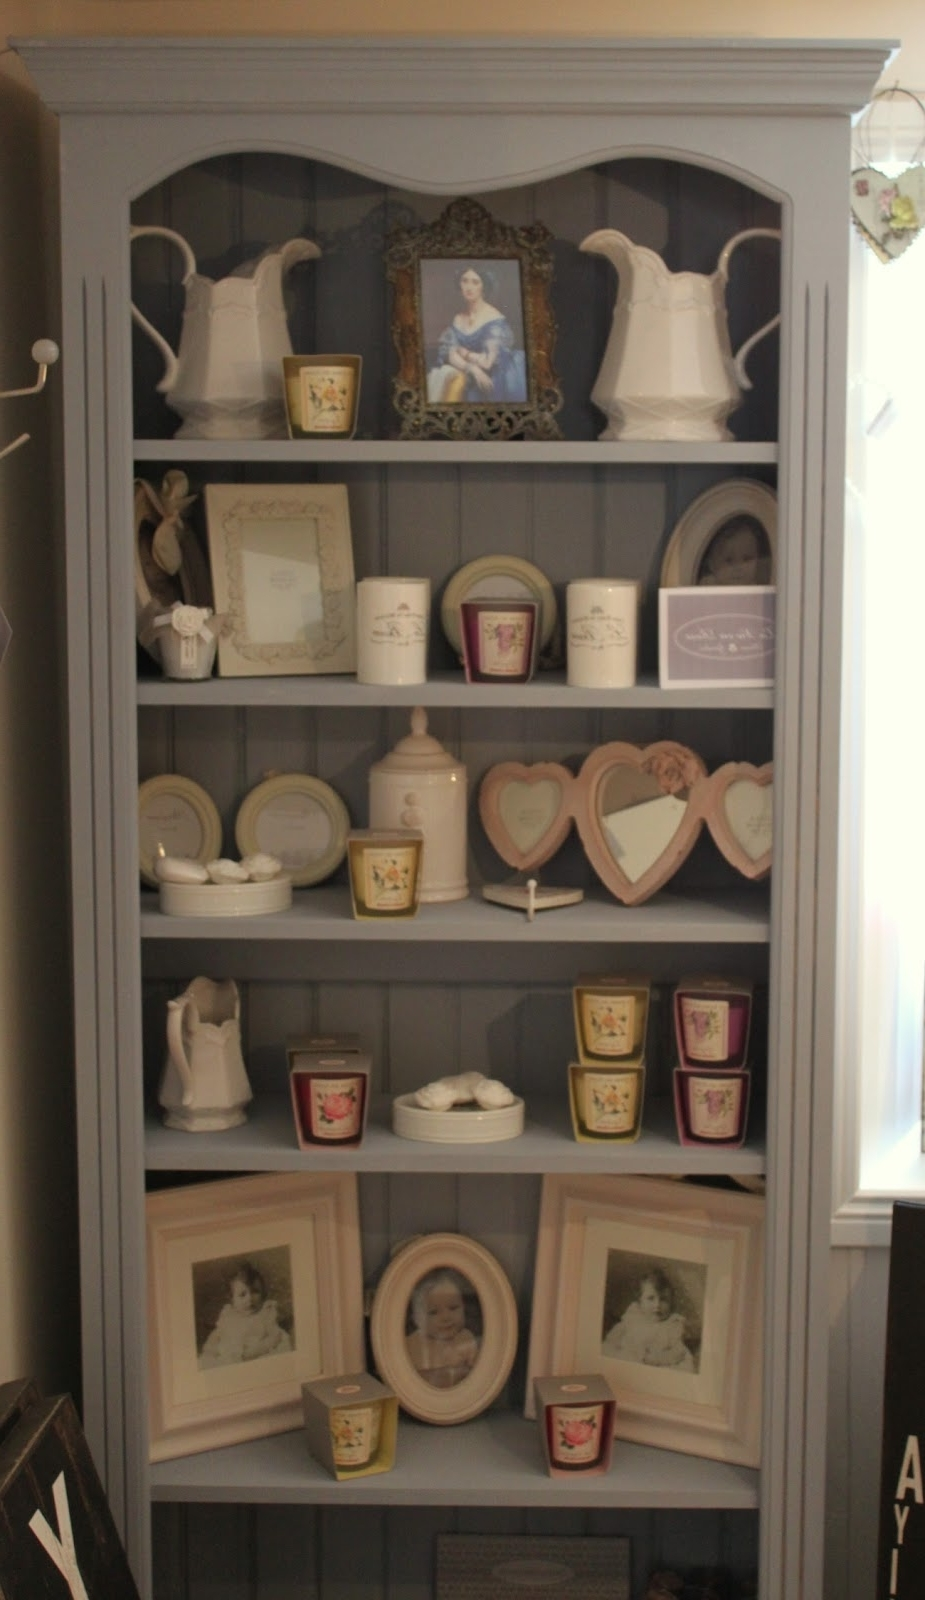 Recent La Vie En Rose: Bookcase Painted In Annie Sloan Chalk Paint™ – A Regarding Painted Wood Bookcases (View 5 of 15)